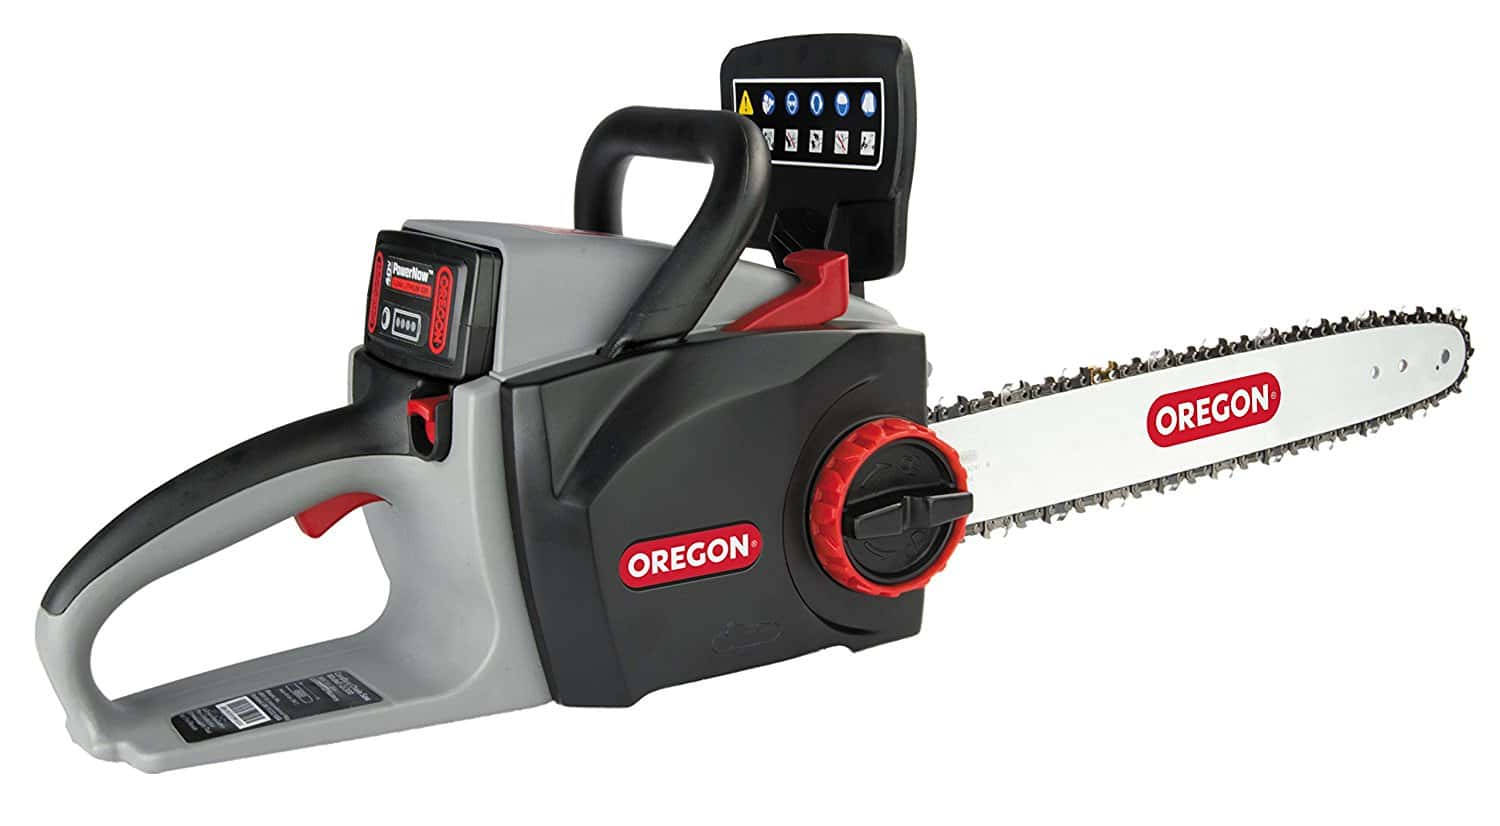 Oregon_Cordless_40V_CS300_A6_Chainsaw_with_4.0_Ah_Battery_and_Charger